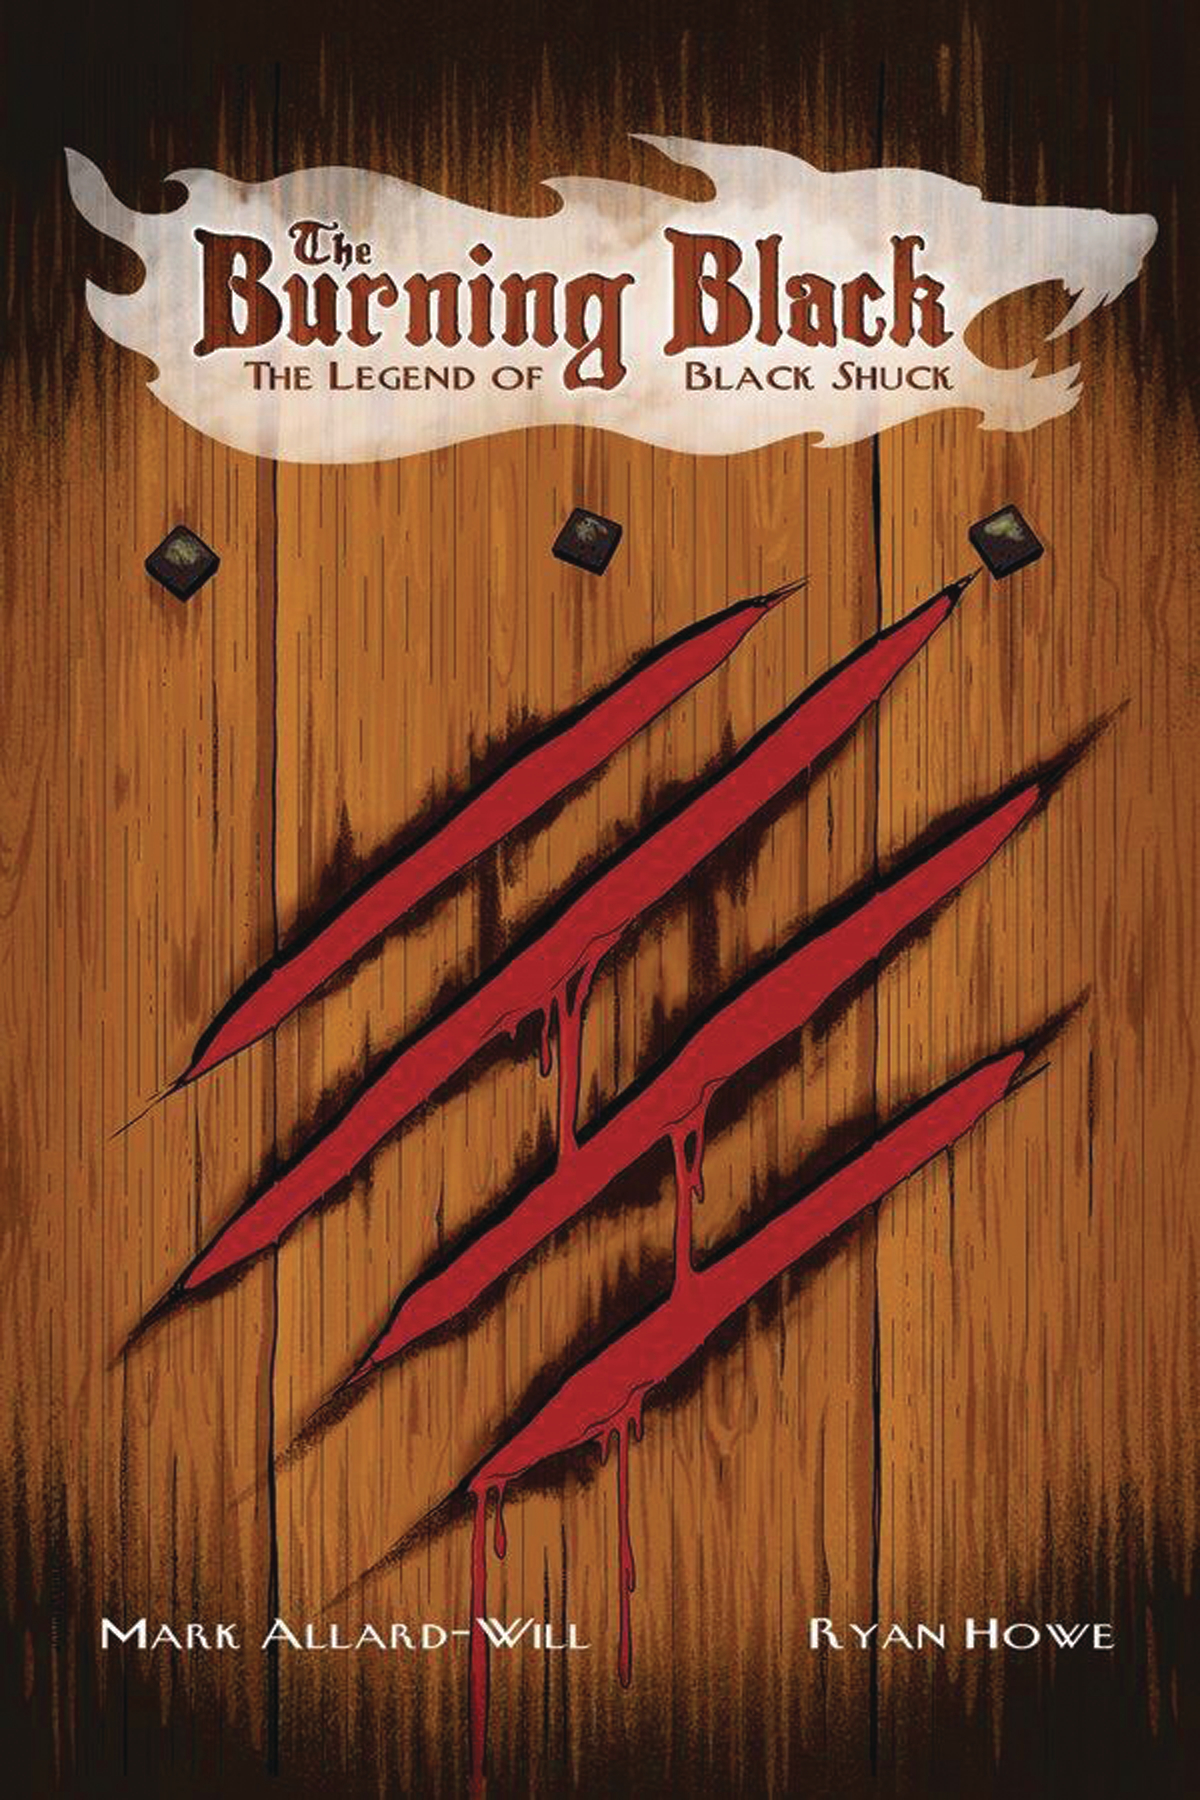 BURNING BLACK LEGEND OF BLACK SHUCK OGN